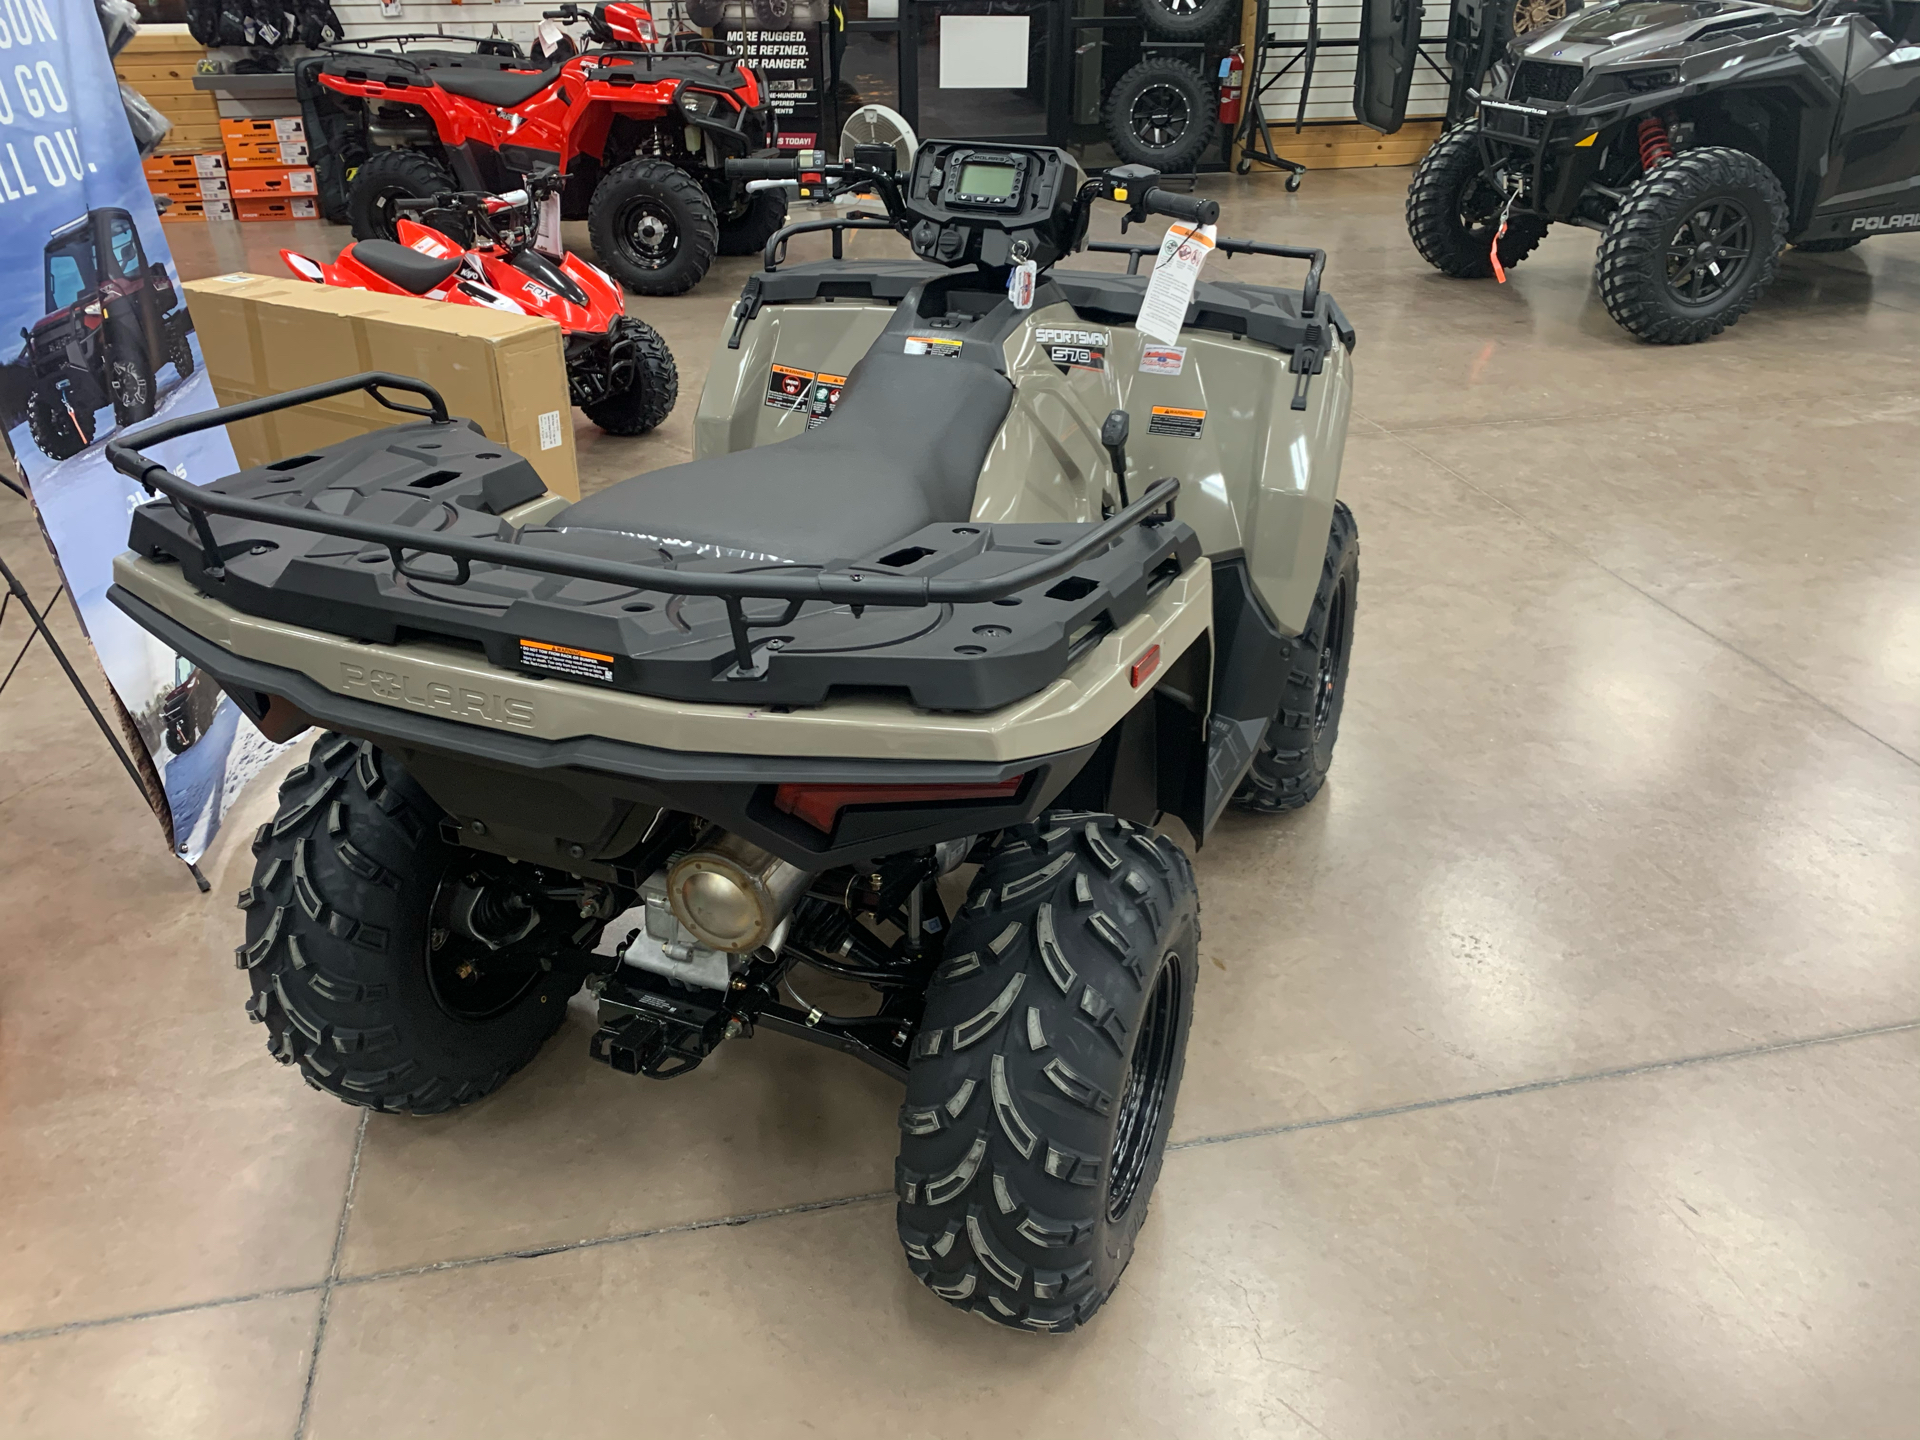 2021 Polaris Sportsman 570 EPS in Algona, Iowa - Photo 3